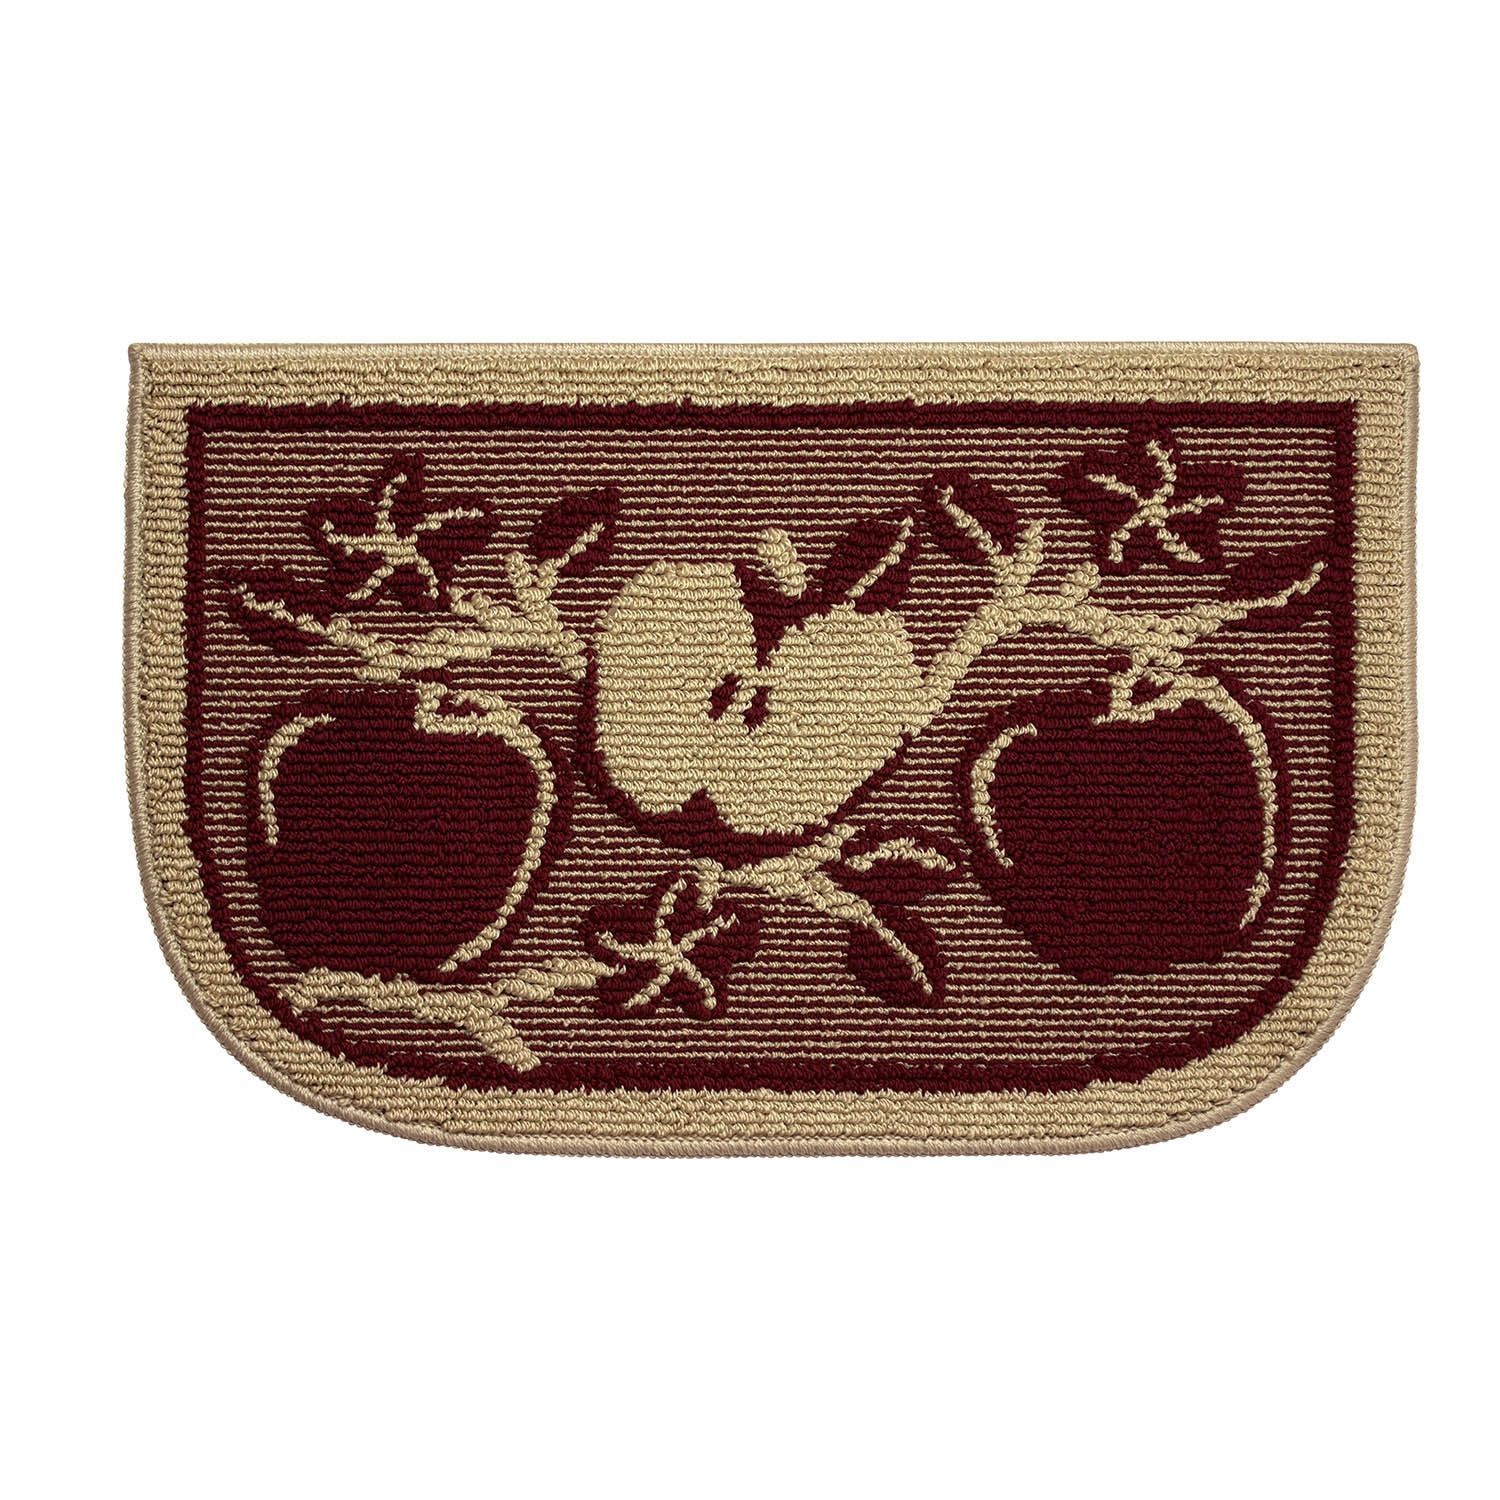 Structures Apple Orchard Textured Loop Wedge-shaped Slice ...